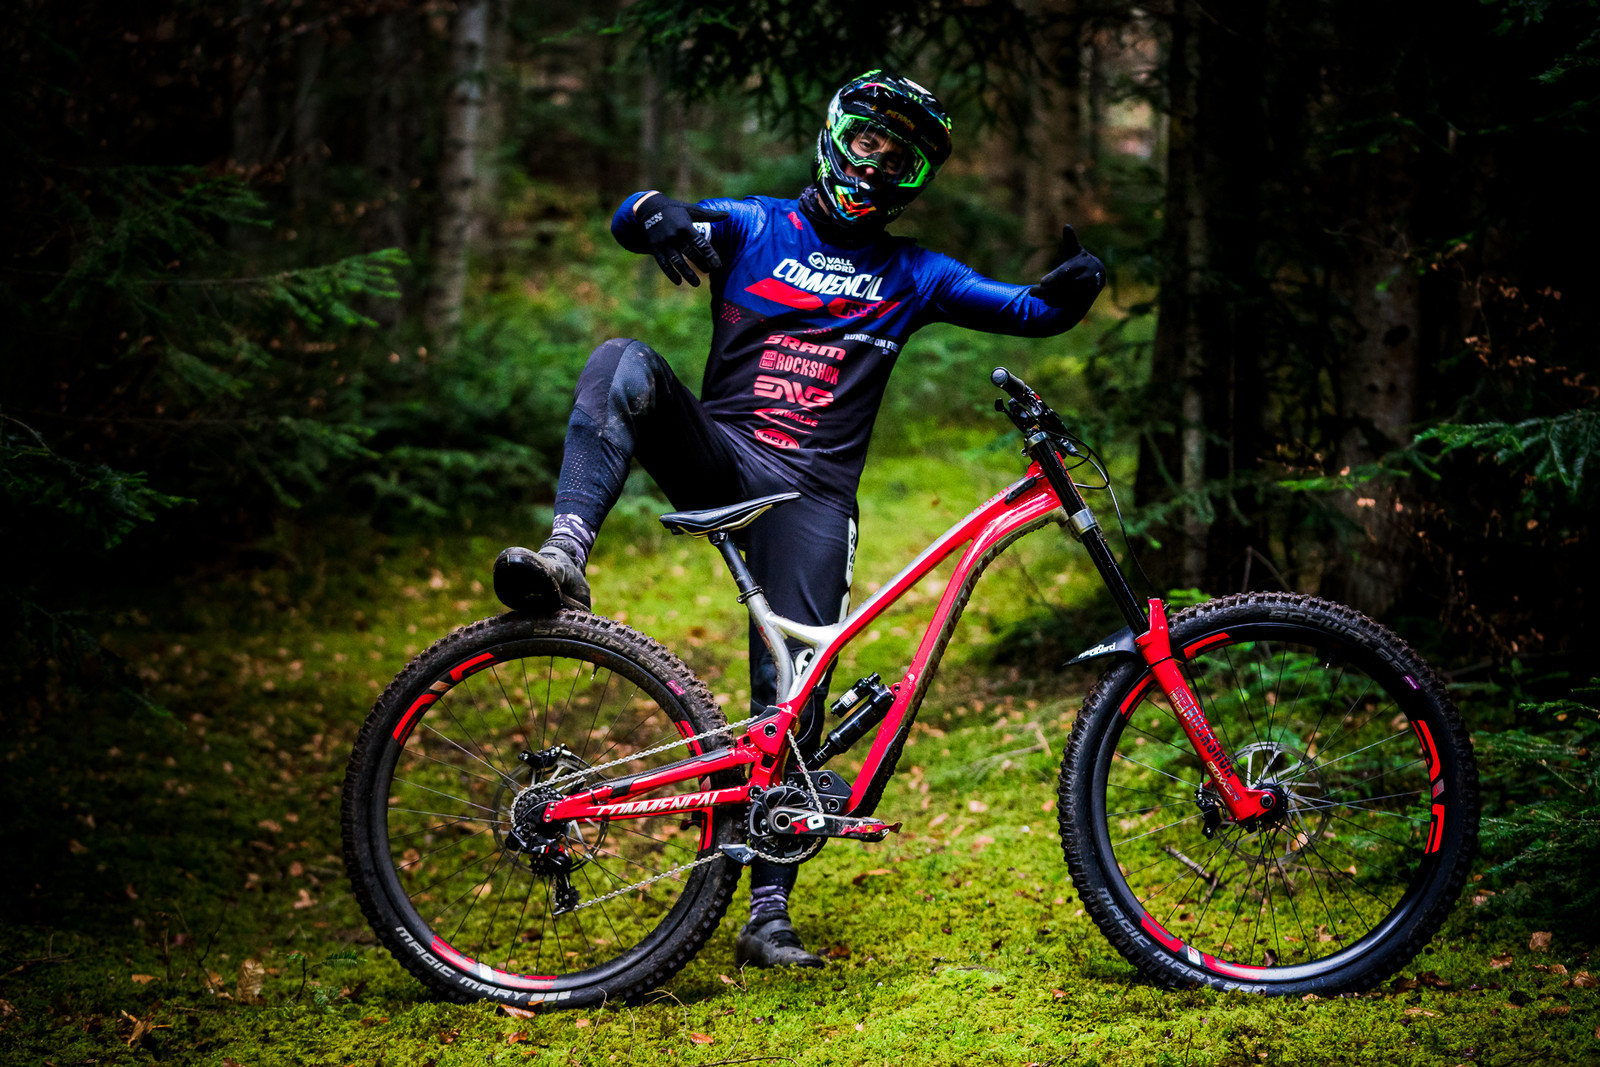 COMMENCAL/VALLNORD DH TEAM SIGNS WITH ENVE AND BELL